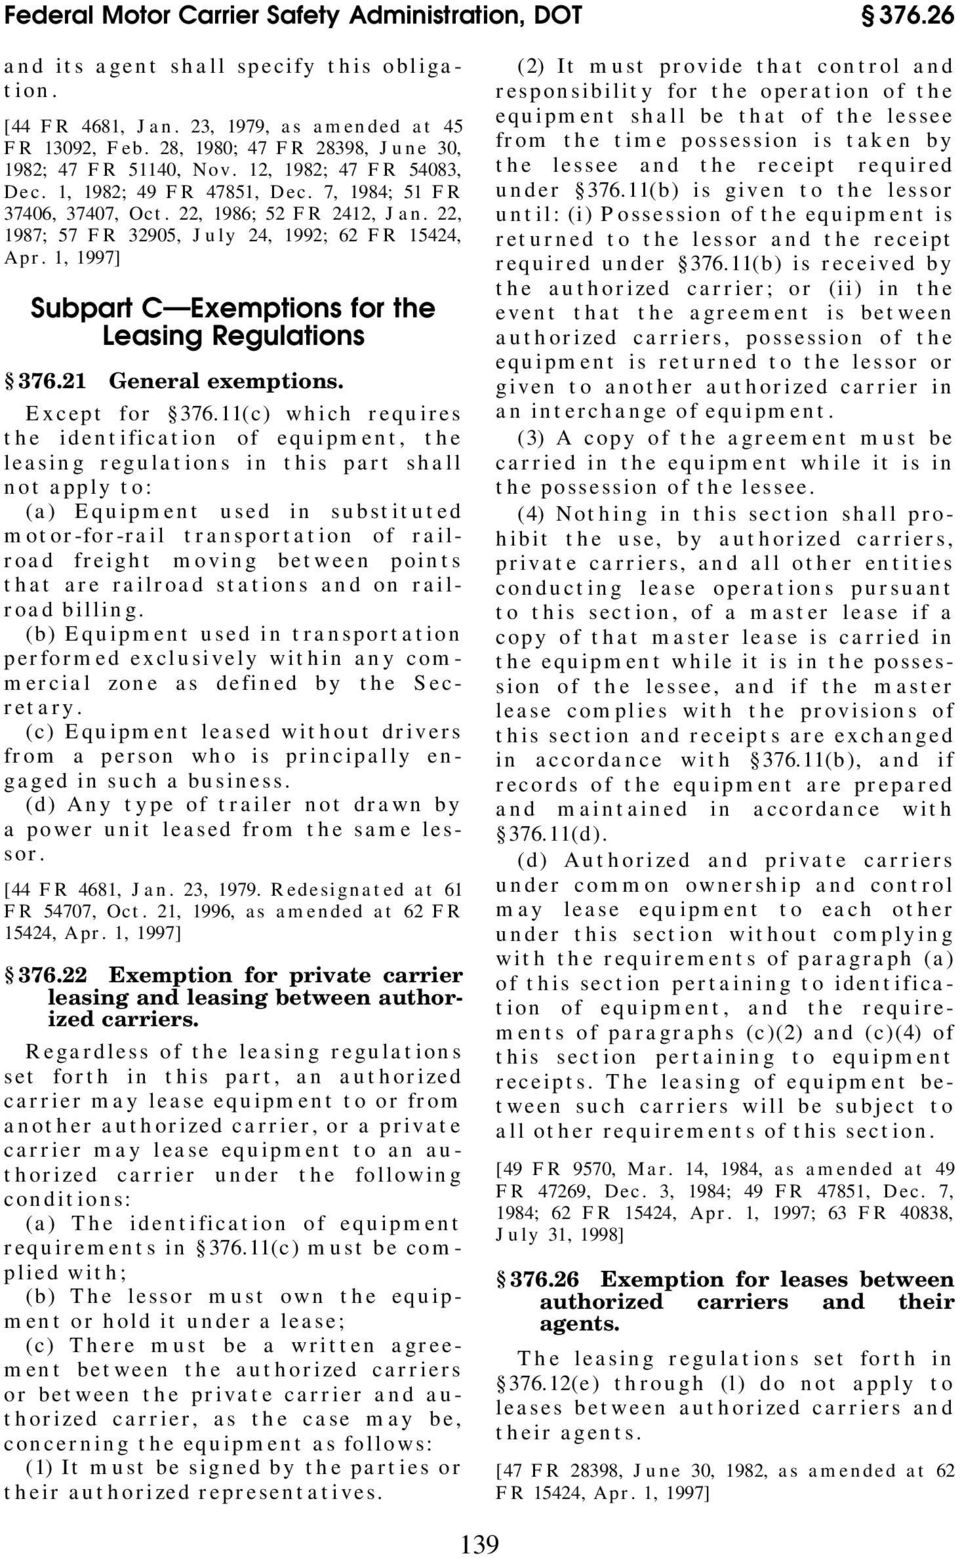 22, 1987; 57 FR 32905, July 24, 1992; 62 FR 15424, Apr. 1, 1997] Subpart C Exemptions for the Leasing Regulations 376.21 General exemptions. Except for 376.